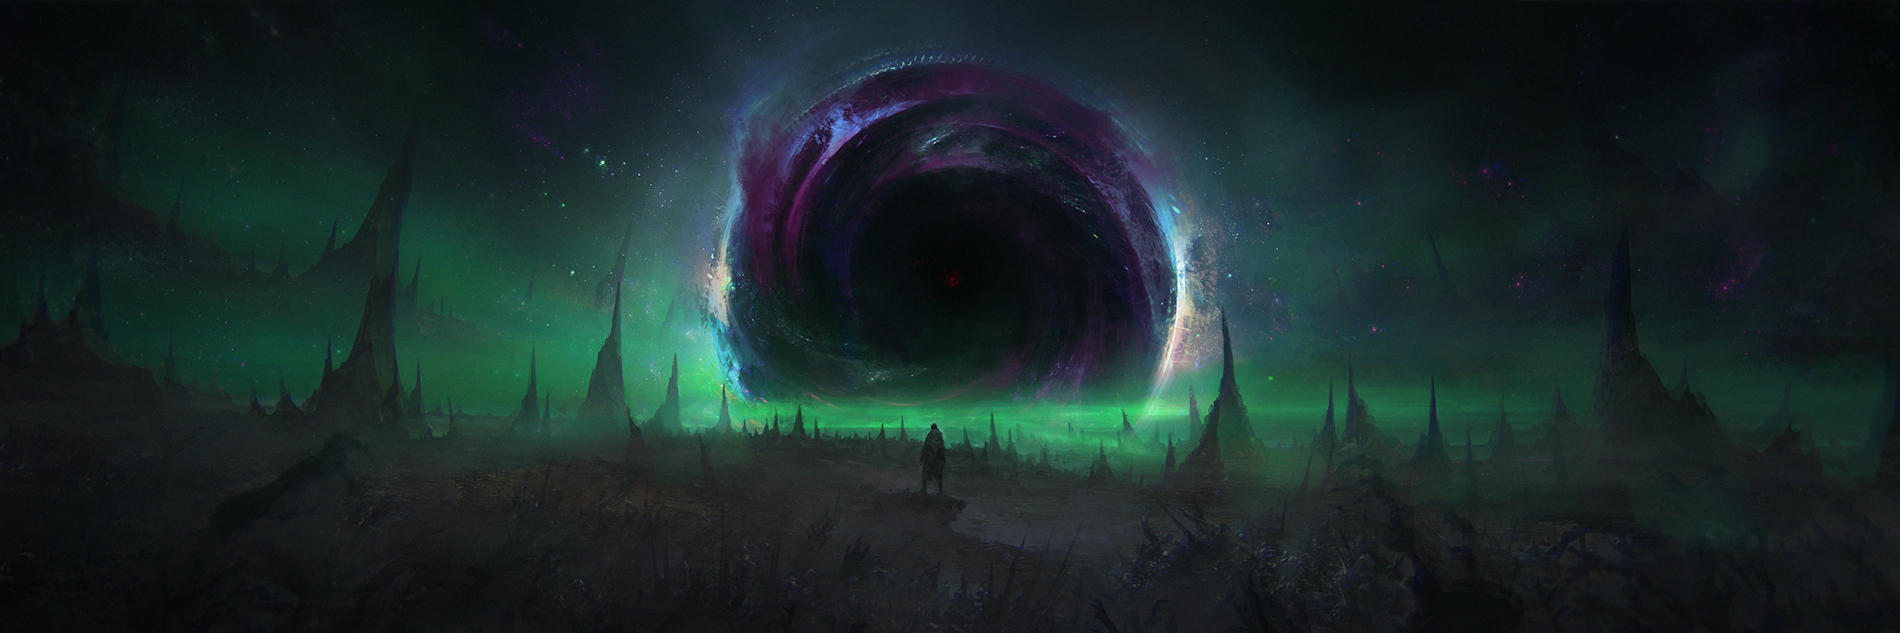 When The Abyss Stares Back by ChrisCold